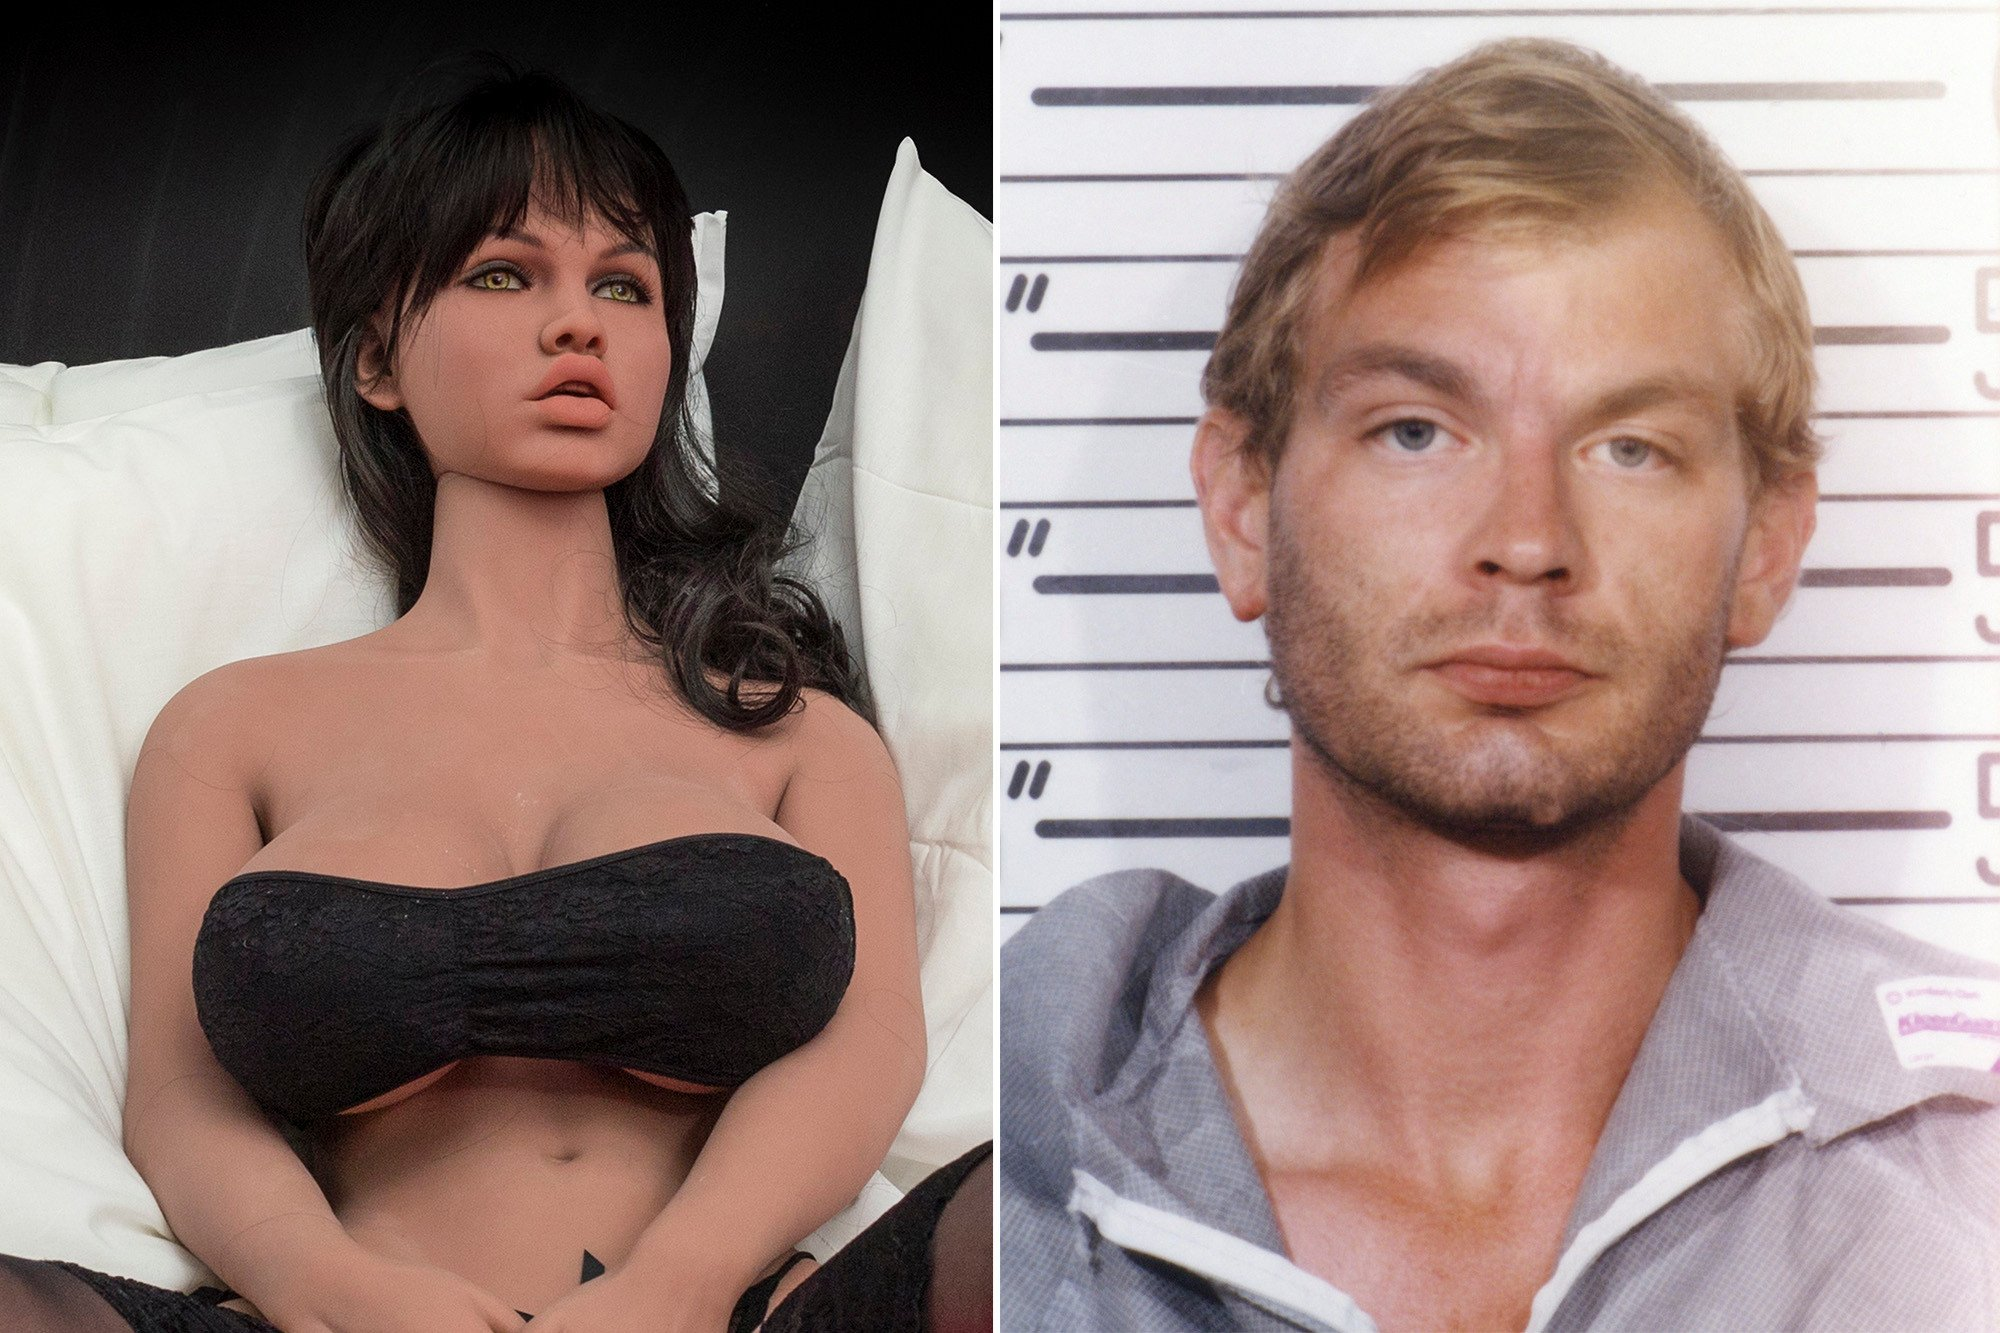 The chilling link between psychopaths and sex dolls